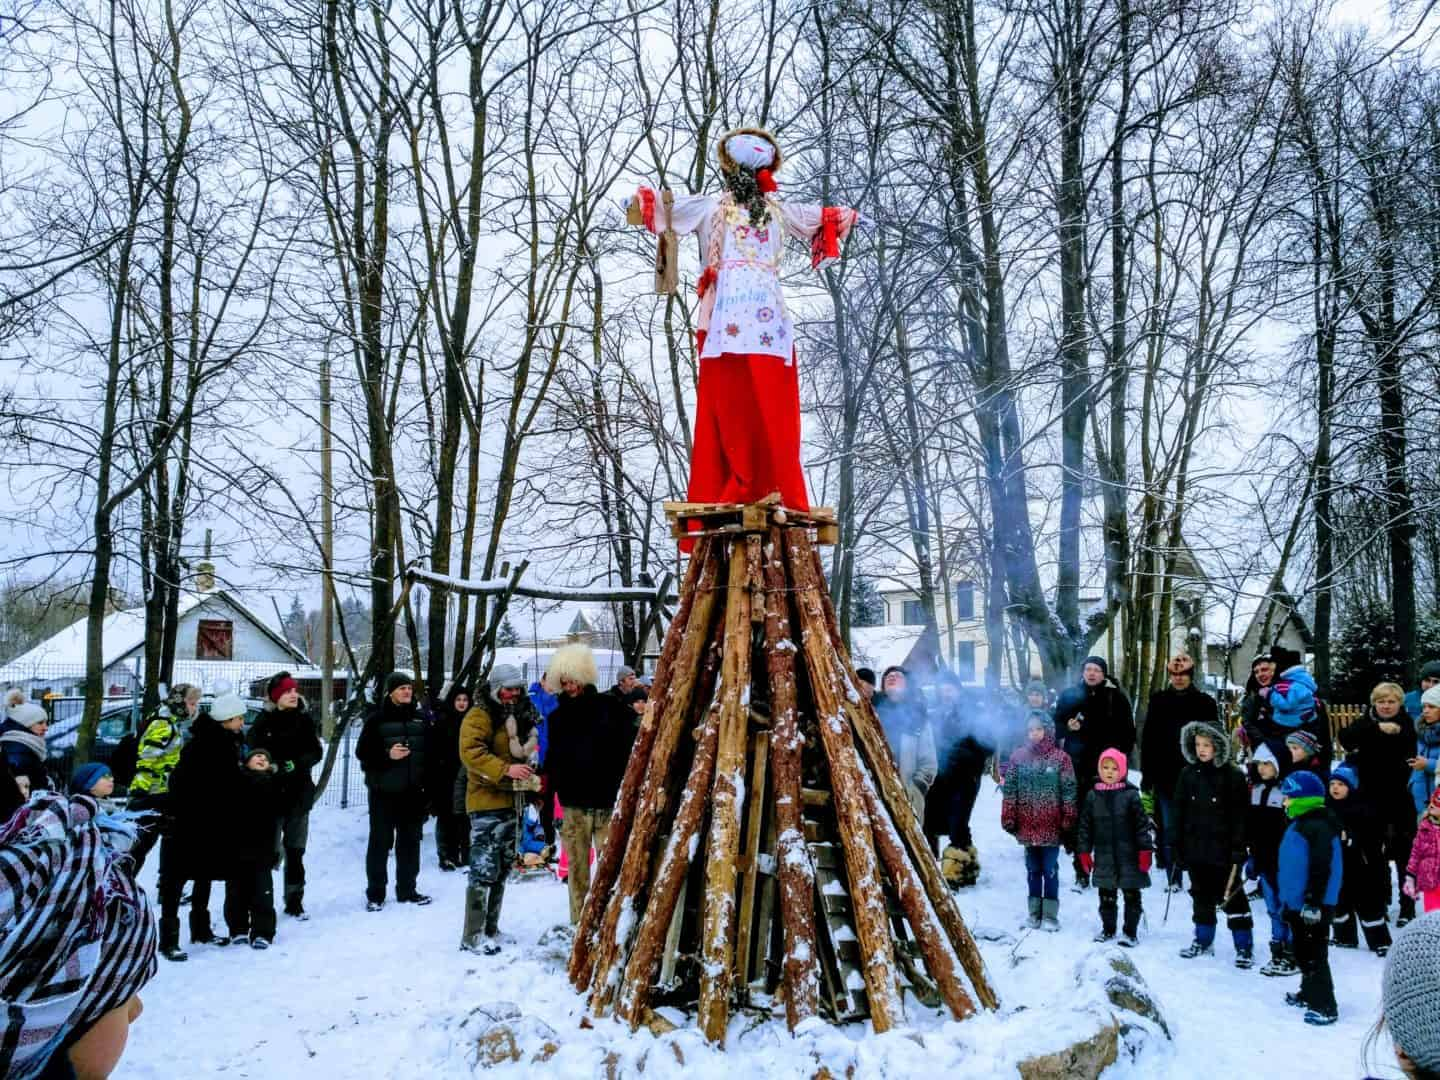 Carnival in Lithuania